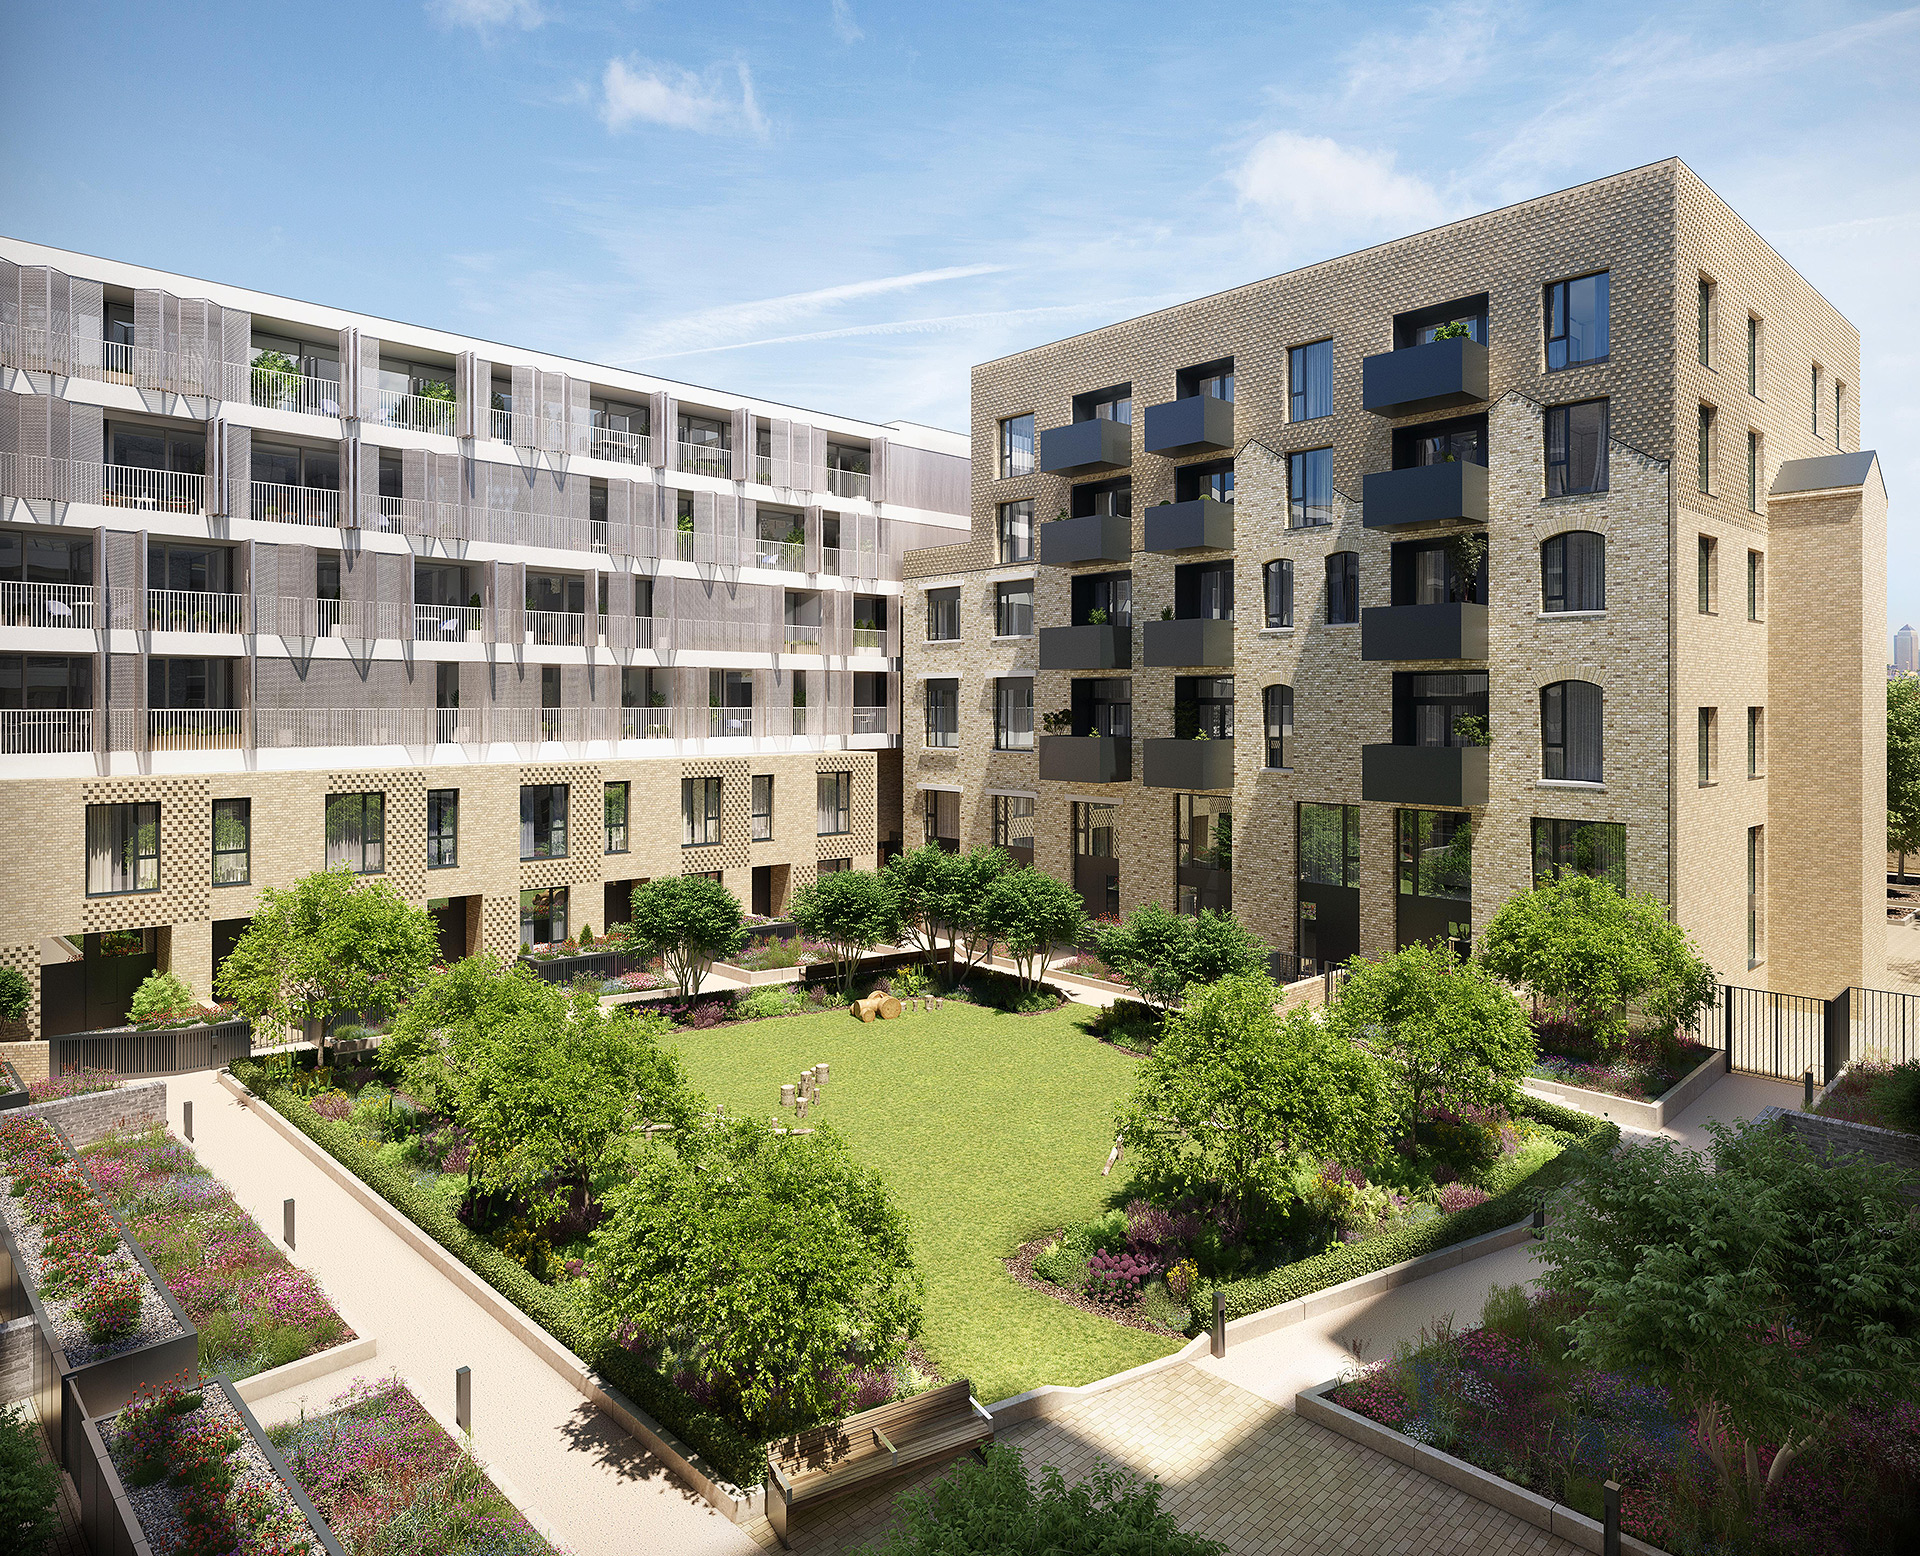 J S Wright Secures £8M-Plus London Square Contract